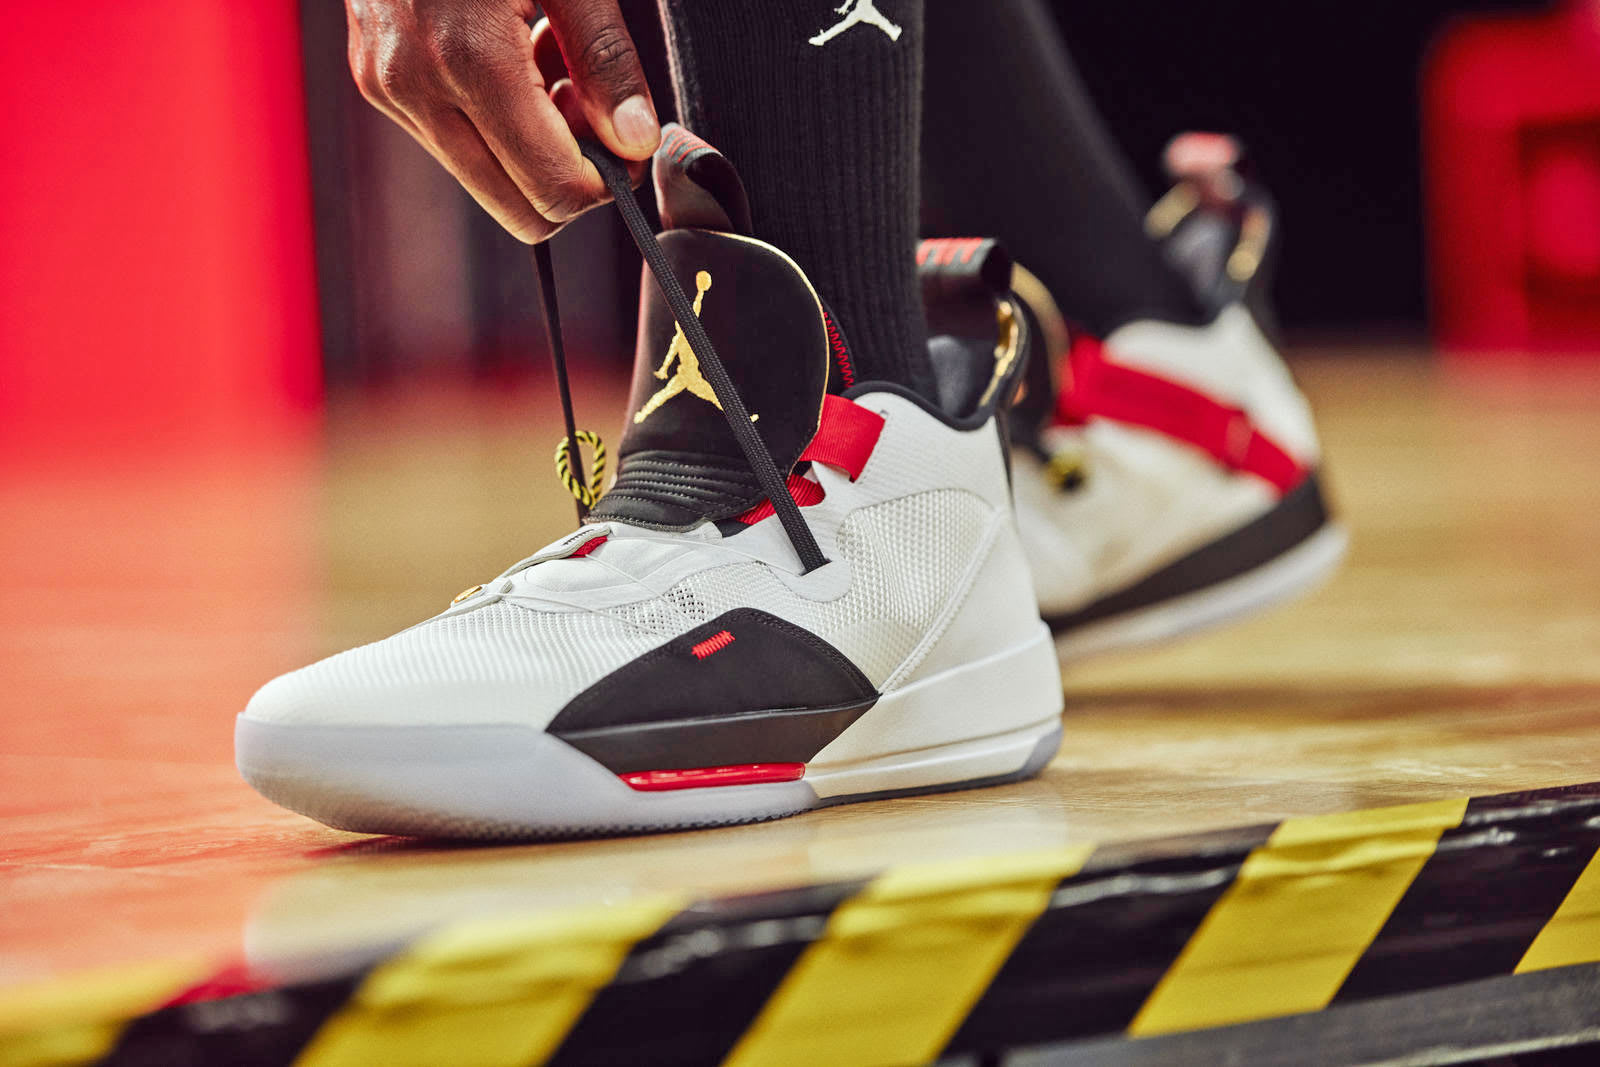 e43a0a87e1e3cb Jordan XXXIII adds lacing tech  informed  by Nike s HyperAdapt